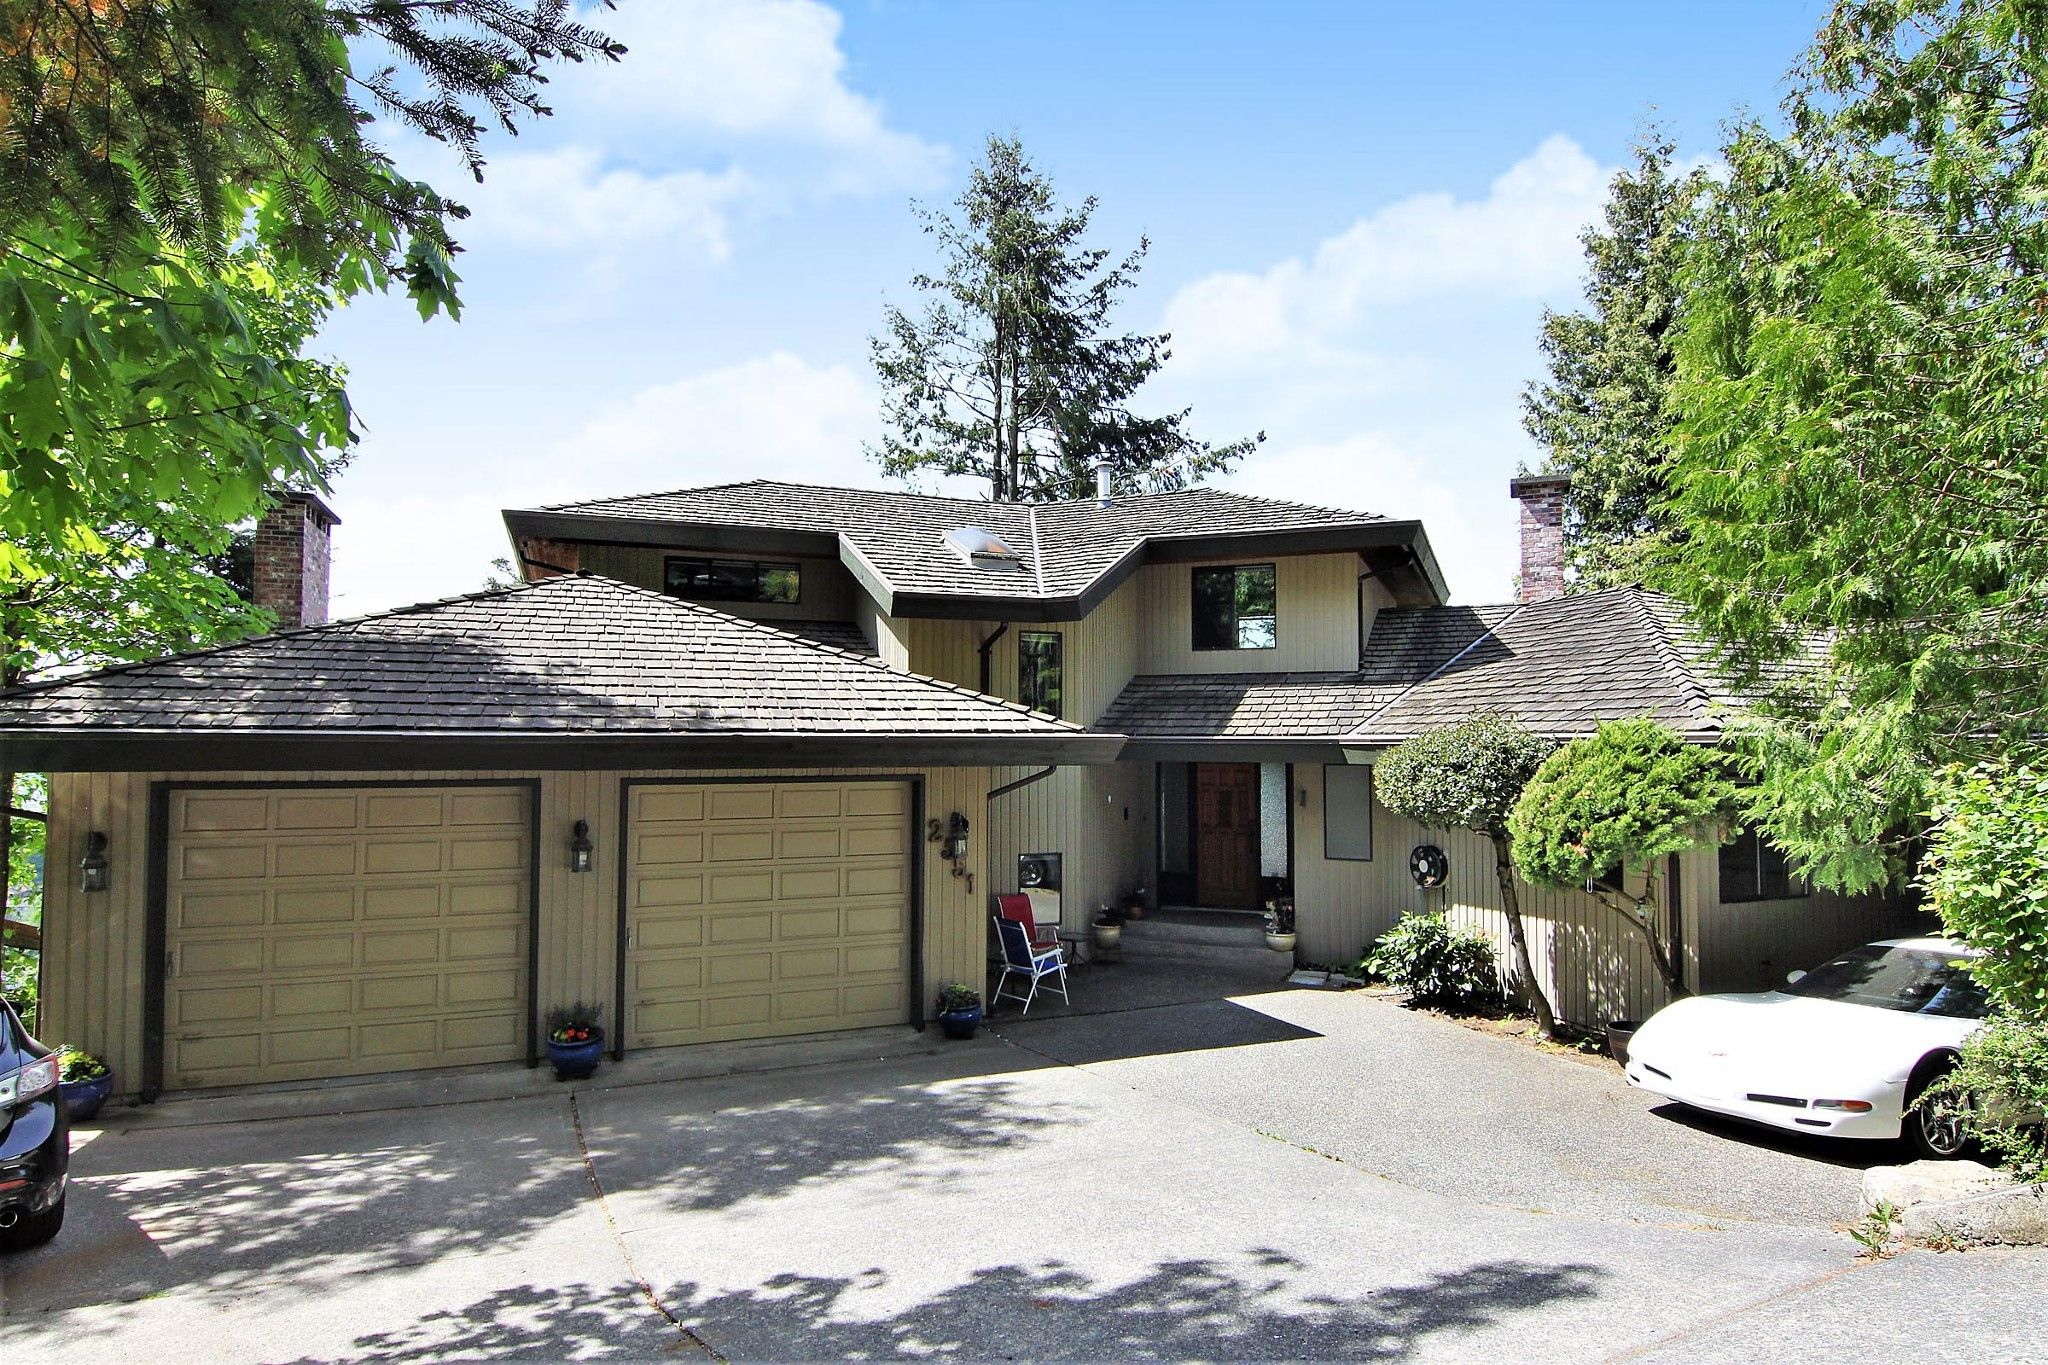 """Main Photo: 2551 ZURICH Drive in Abbotsford: Abbotsford East House for sale in """"Glen Mountain"""" : MLS®# R2370000"""